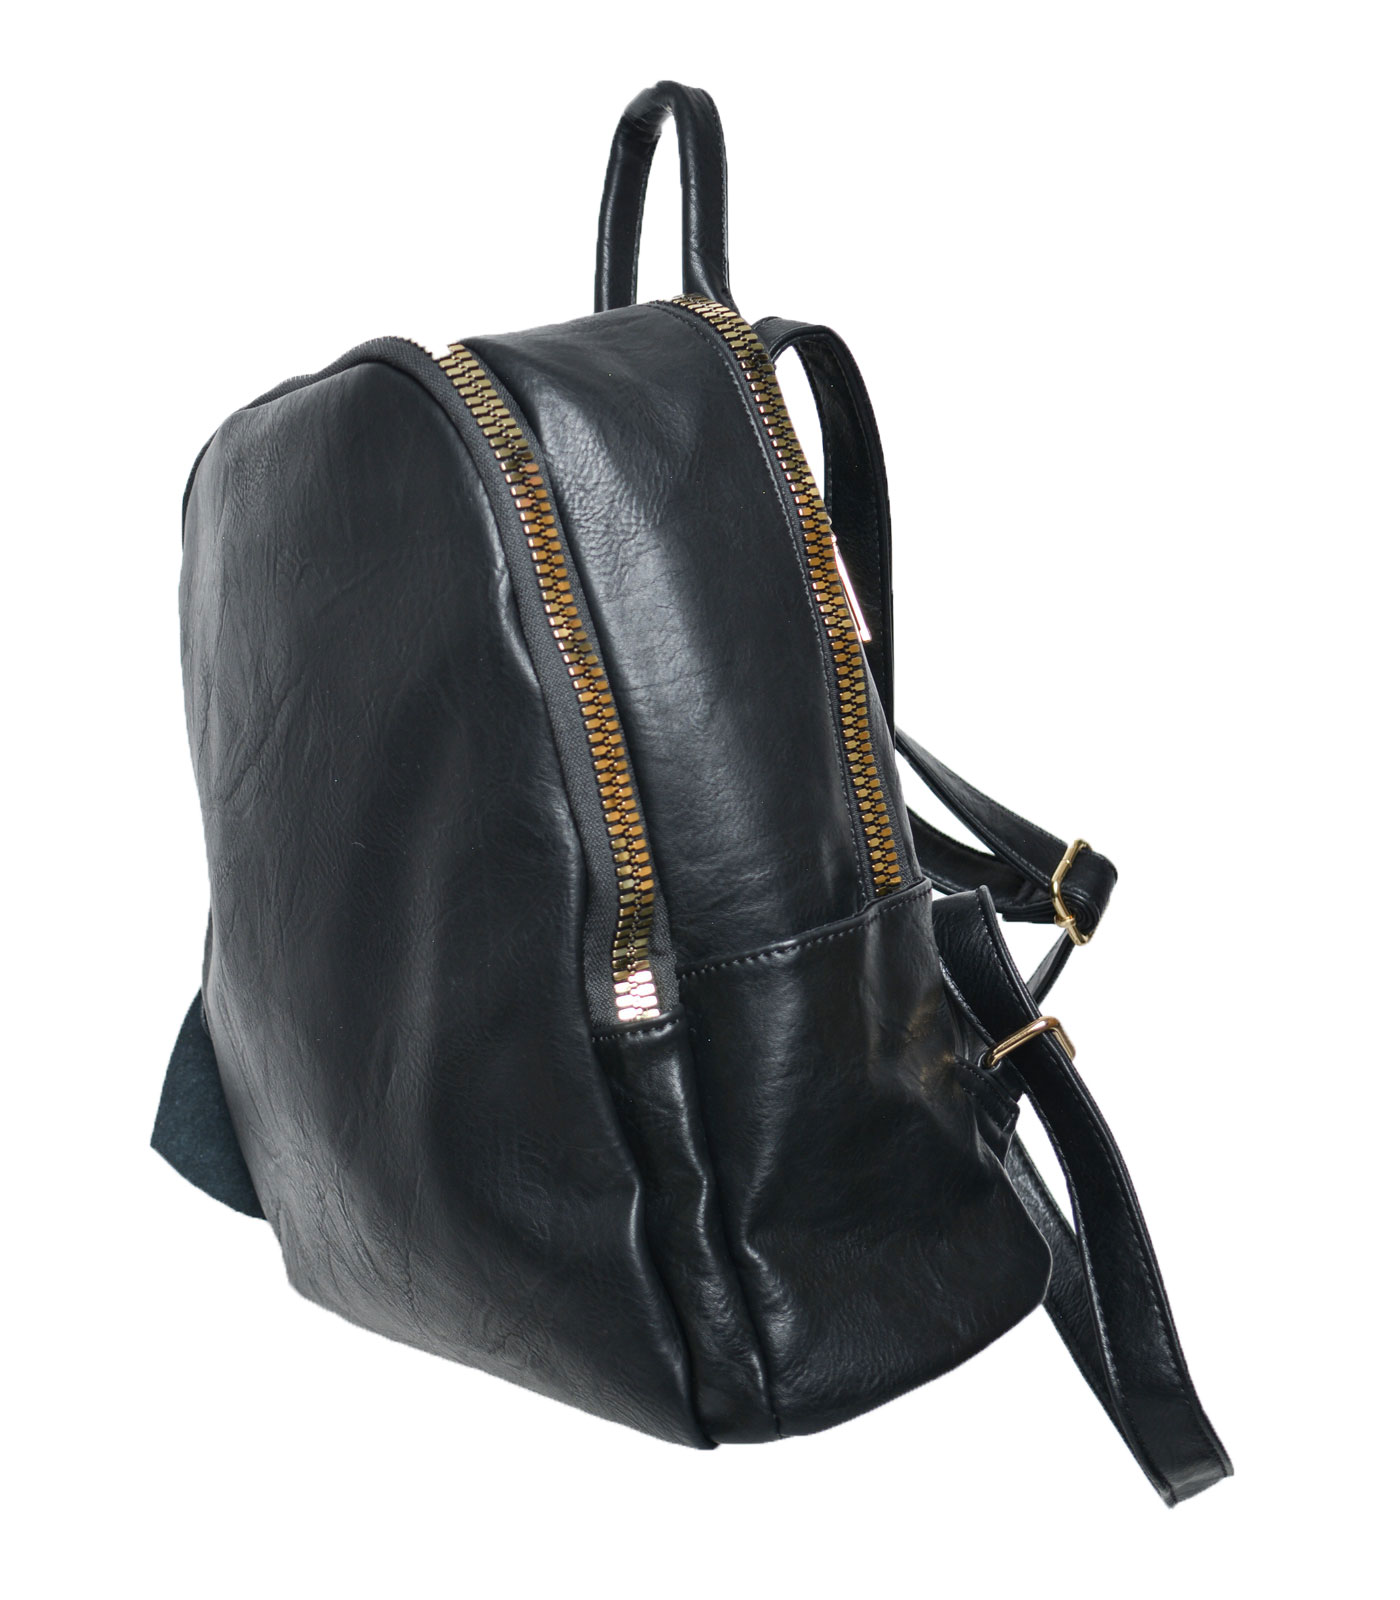 Black backpack with gold zip